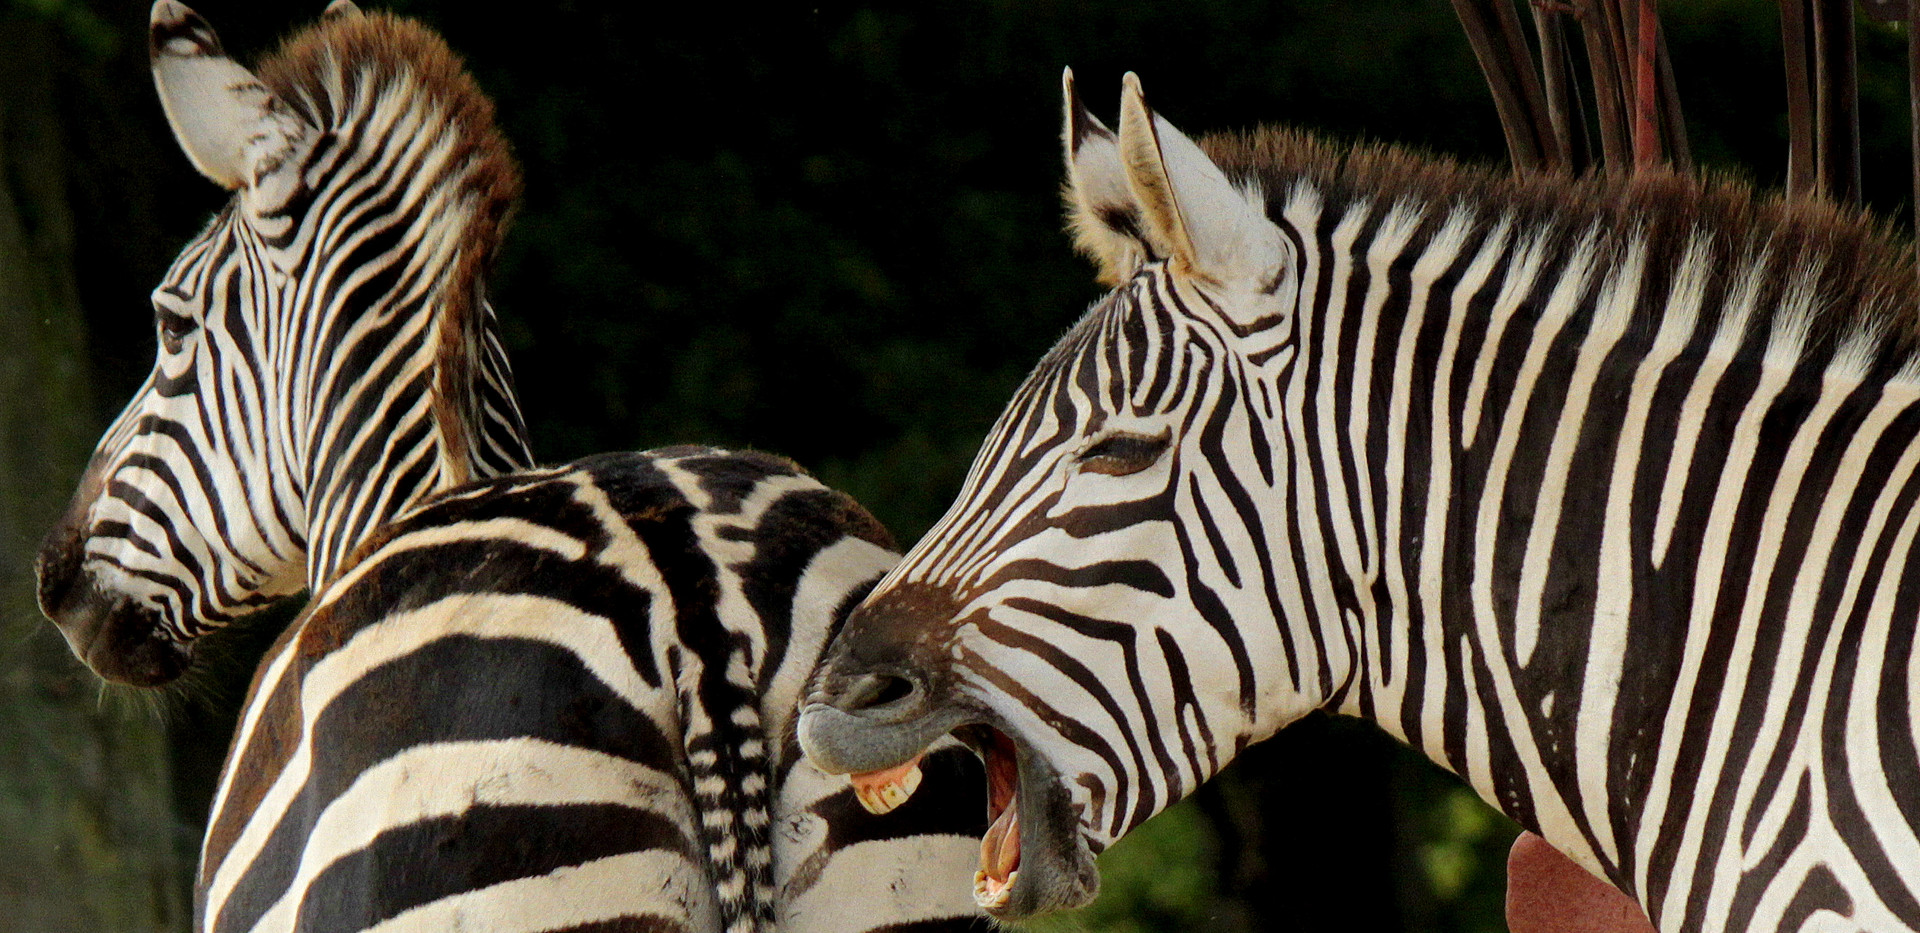 Plains zebra at Knowsley Safari (August 2017)